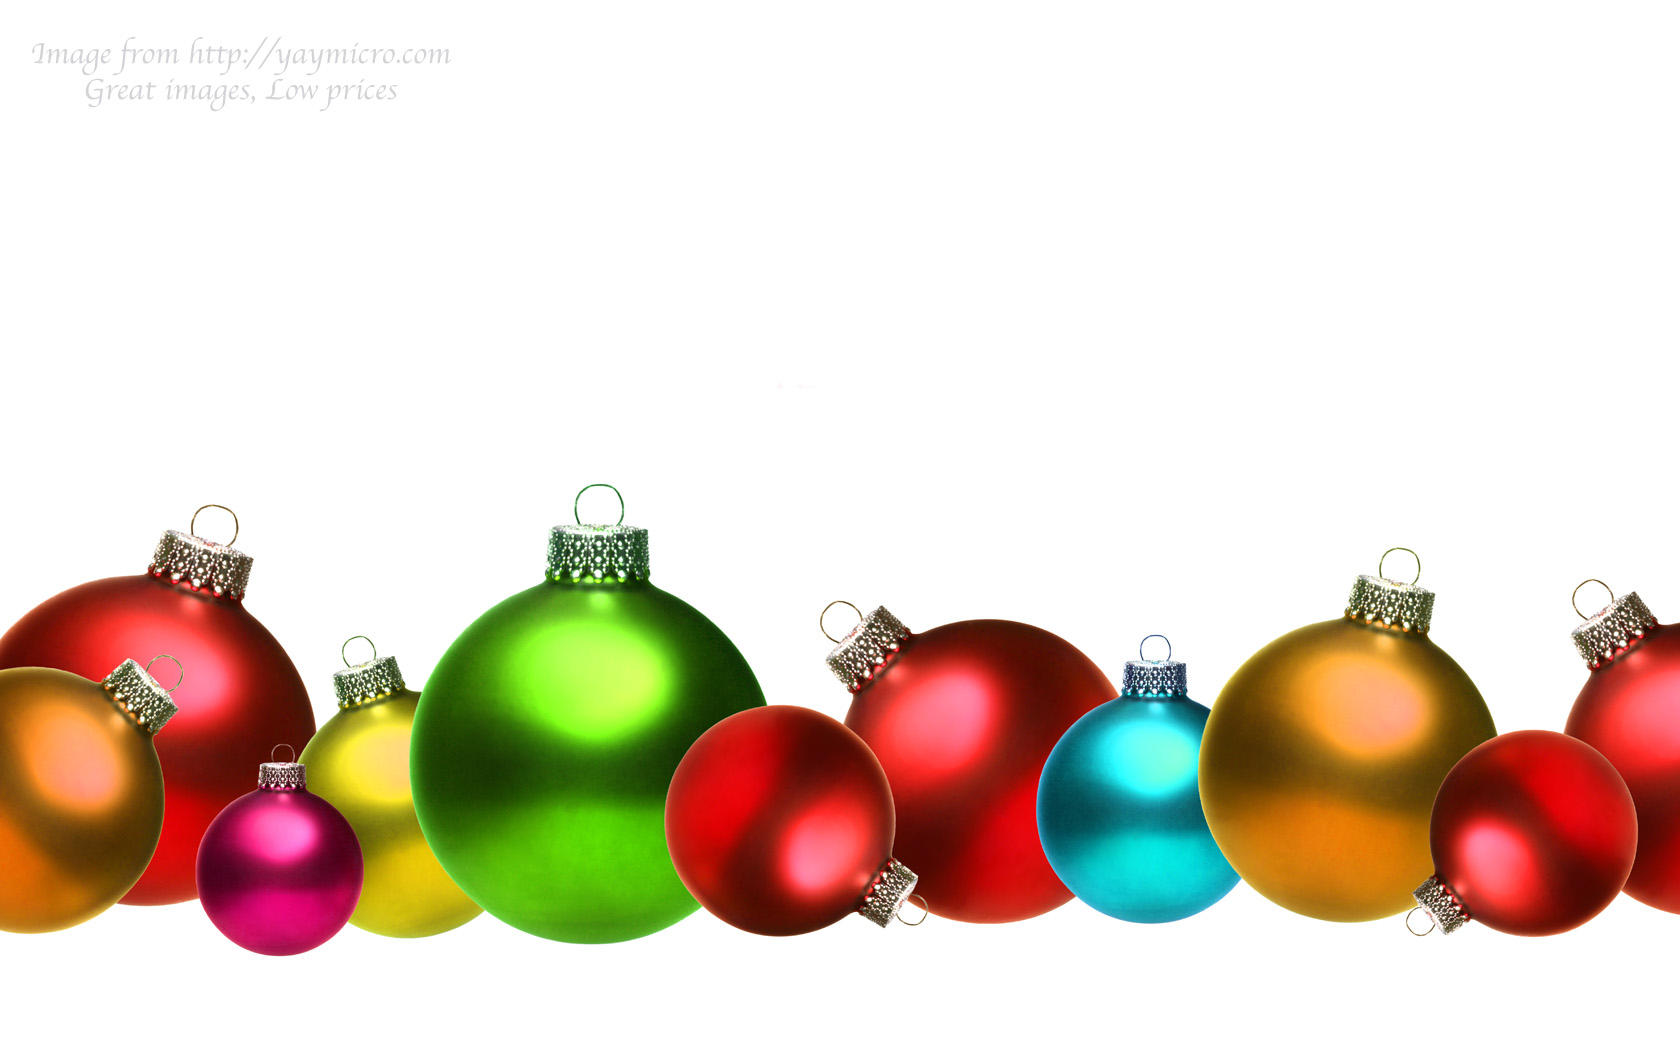 Christmas Decorations Clipart Free - ClipArt Best